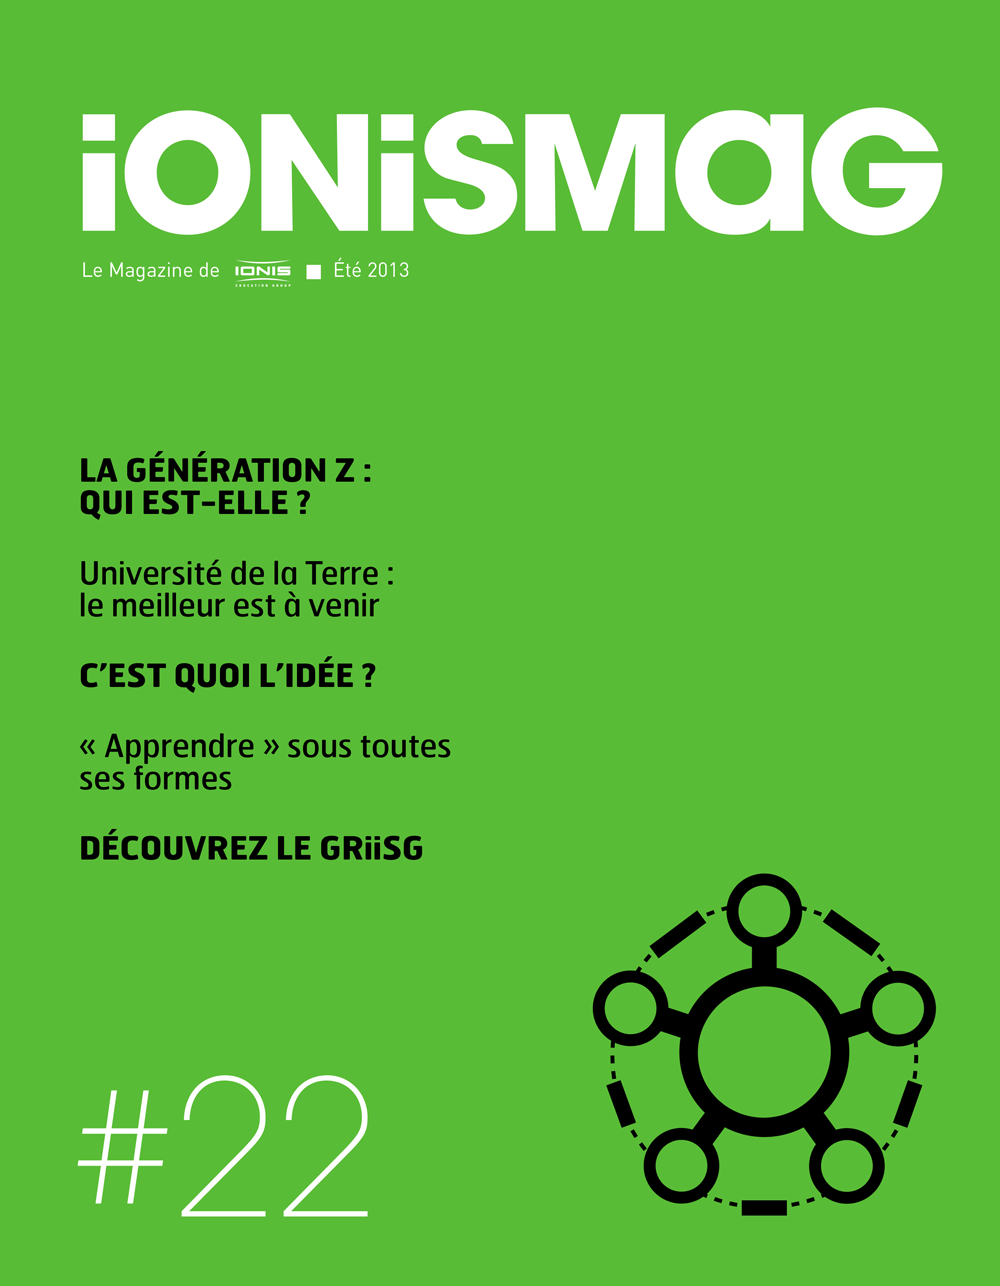 IONIS MAG 22